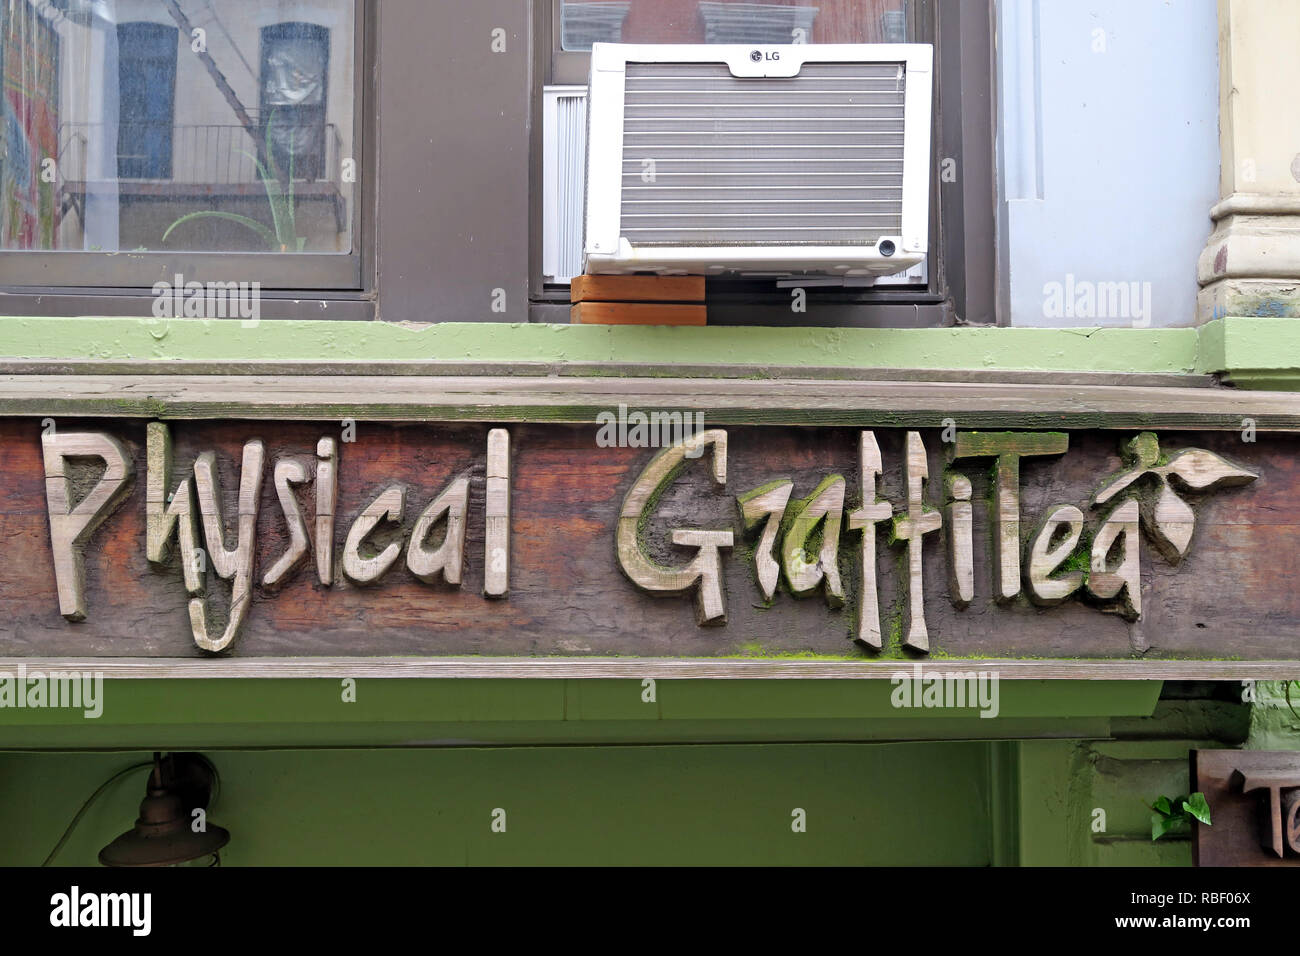 Physical Graffitea ( Physical Graffiti ) after Led Zeppelin album, cafe, 96 St Marks Pl, New York, NY 10009, USA - Stock Image